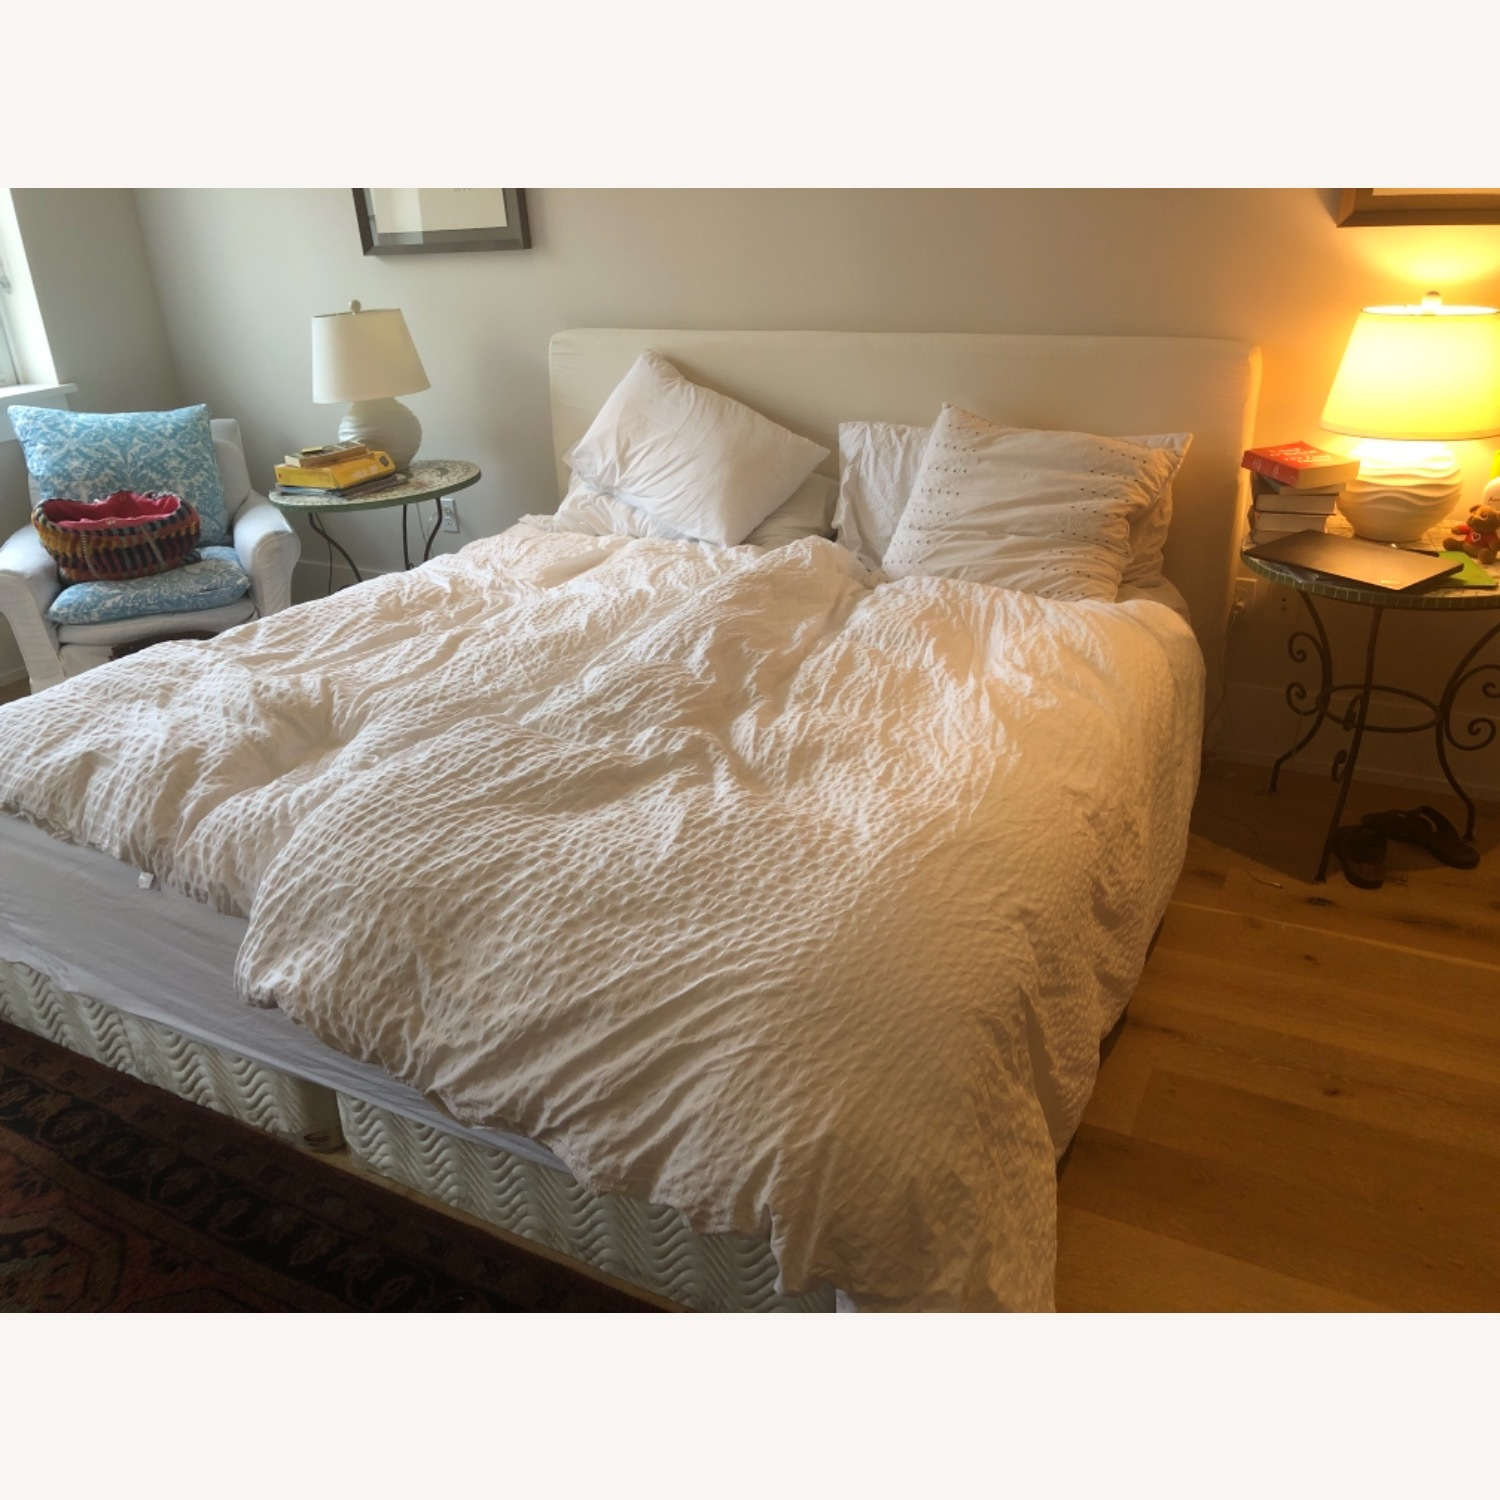 King Size Bed - image-2